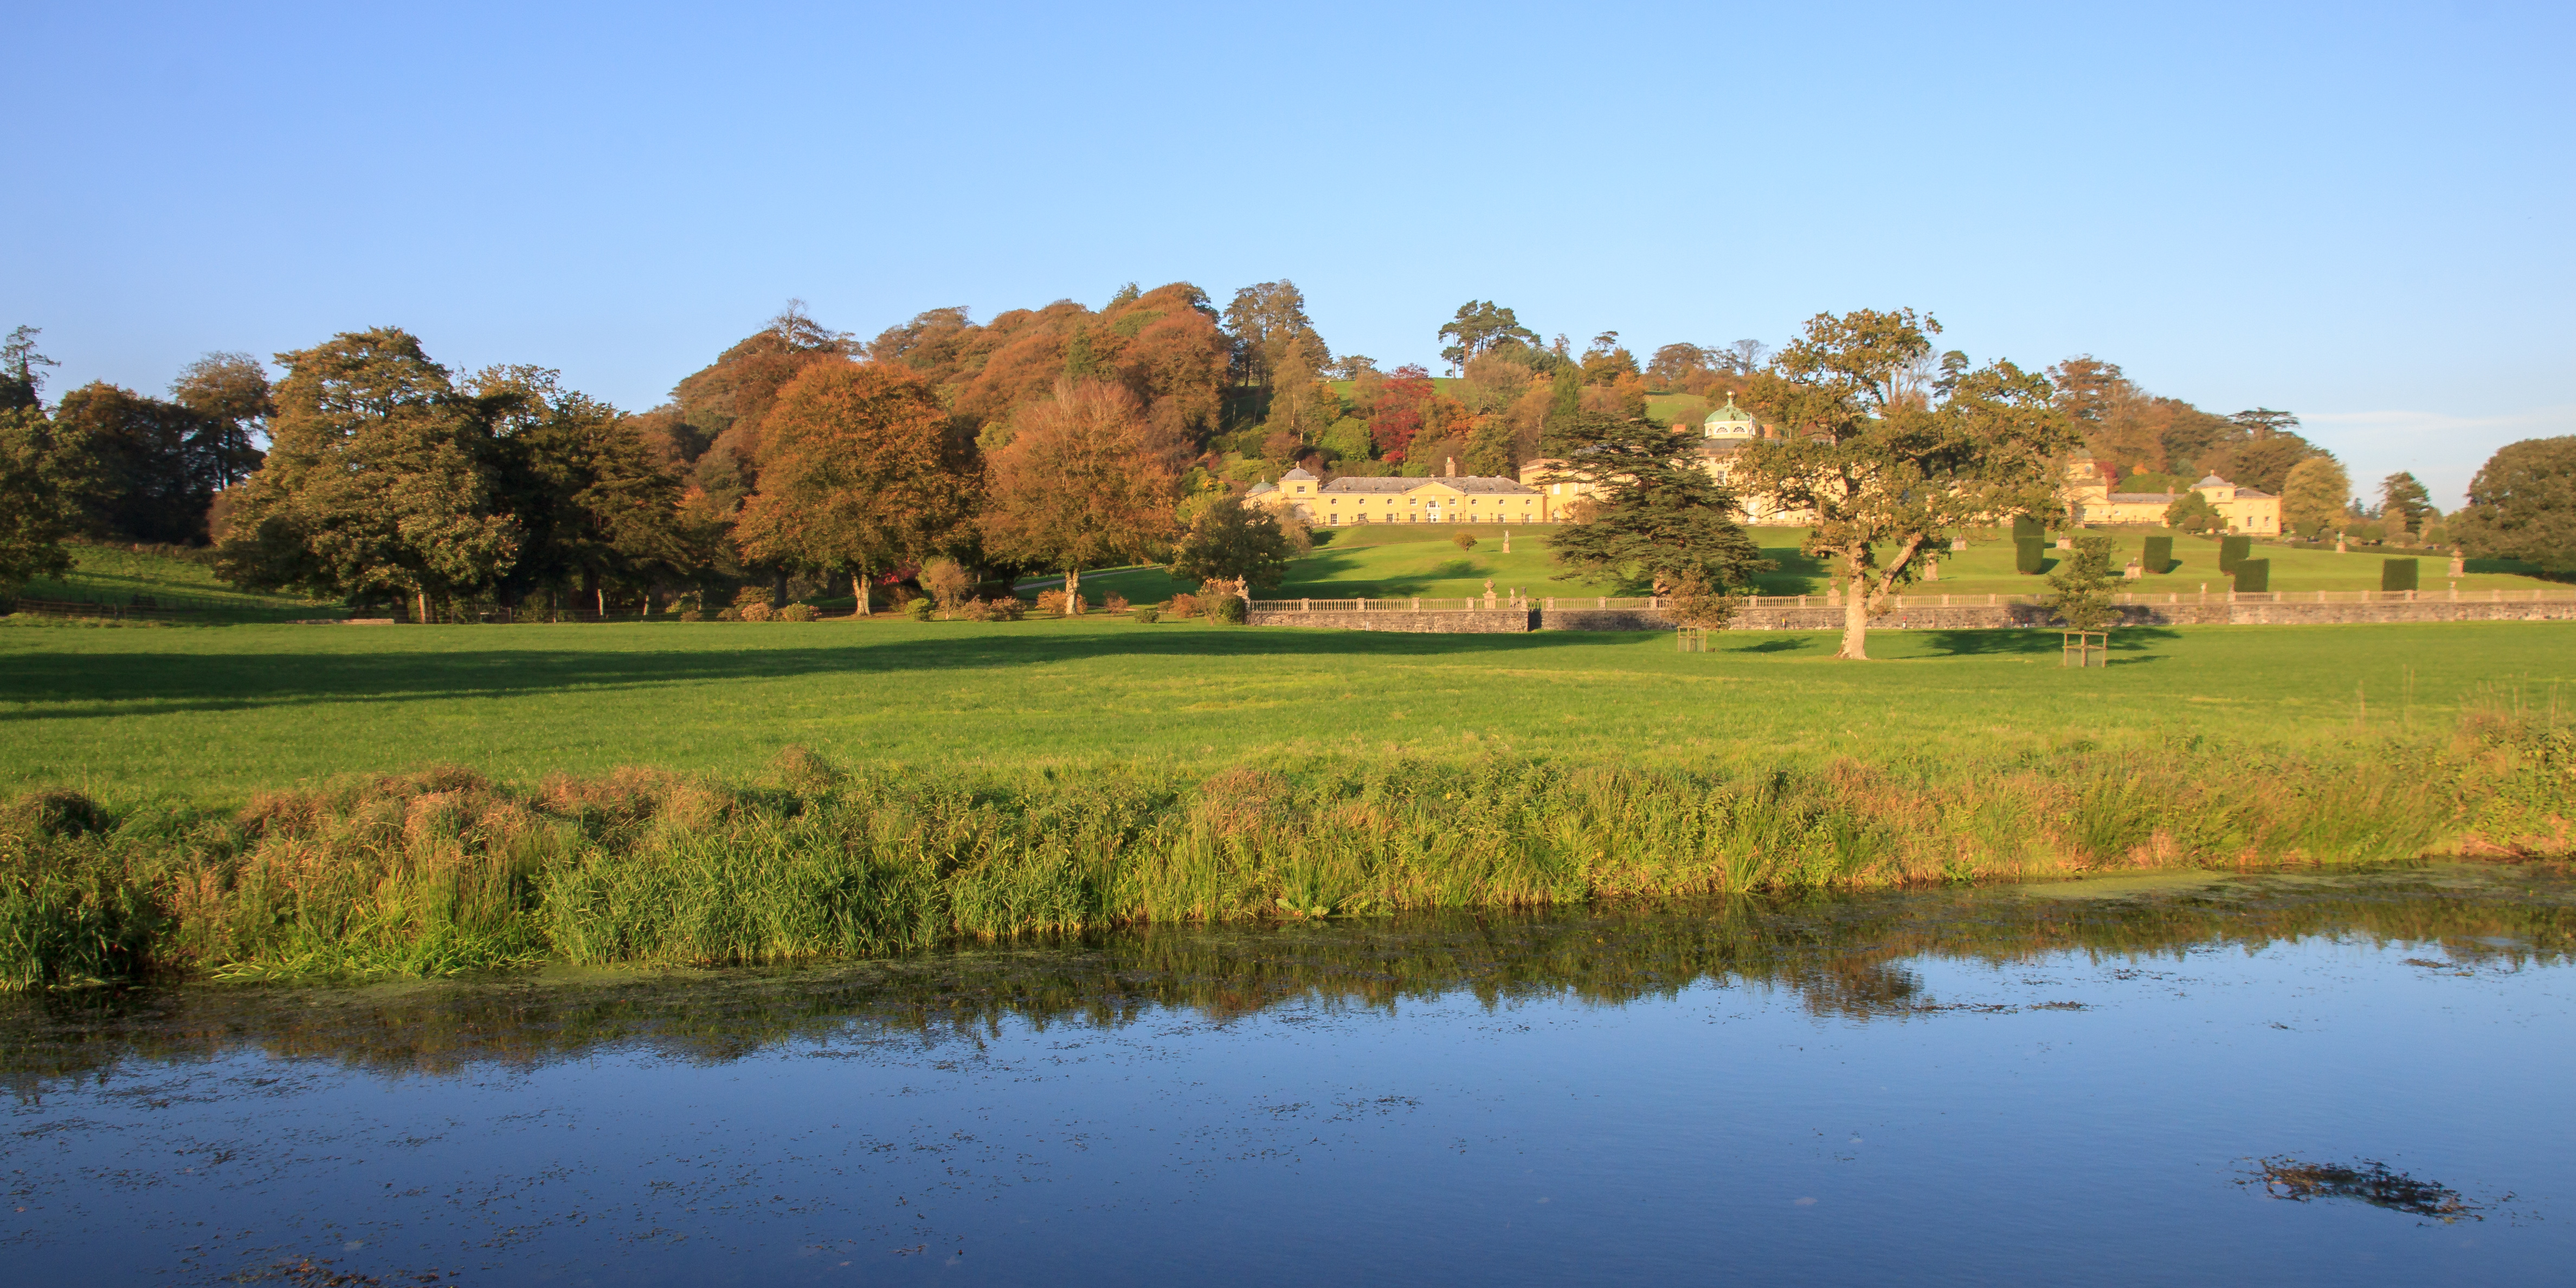 Castle Hill House and Gardens near South Molton in October